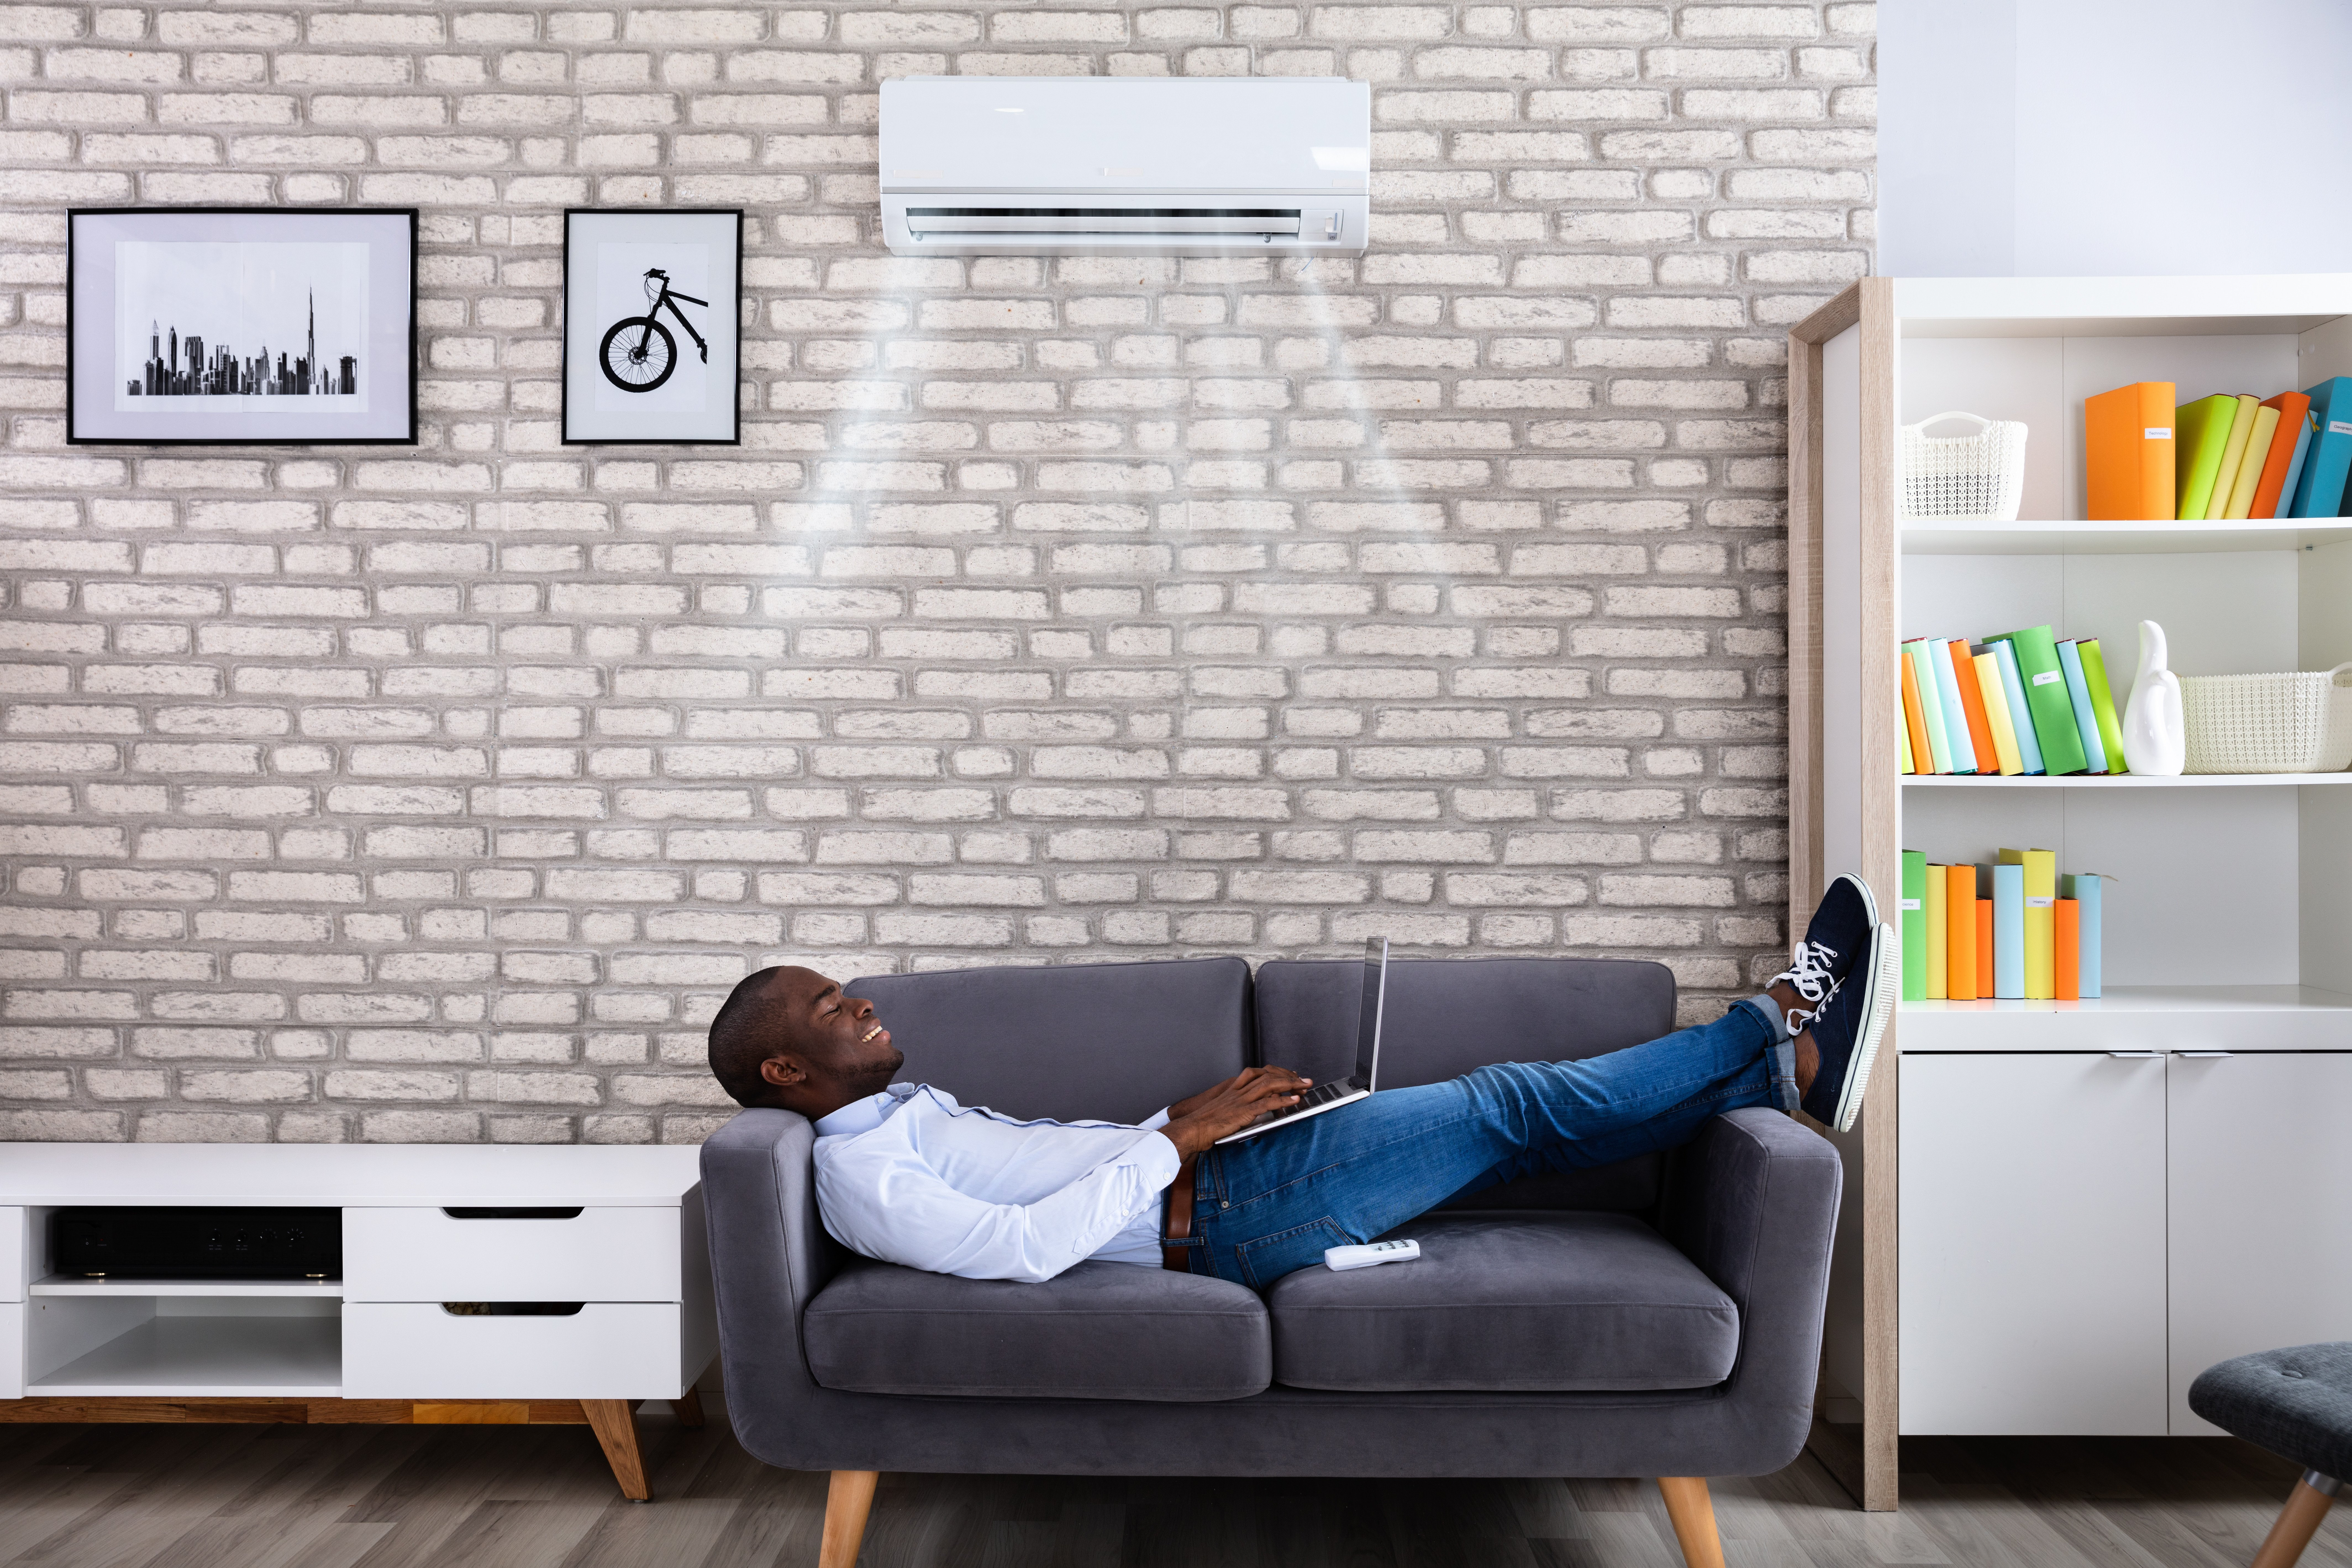 Teen Bedroom Wall Decor Beautiful Ductless Heating and Cooling — How to Get Started